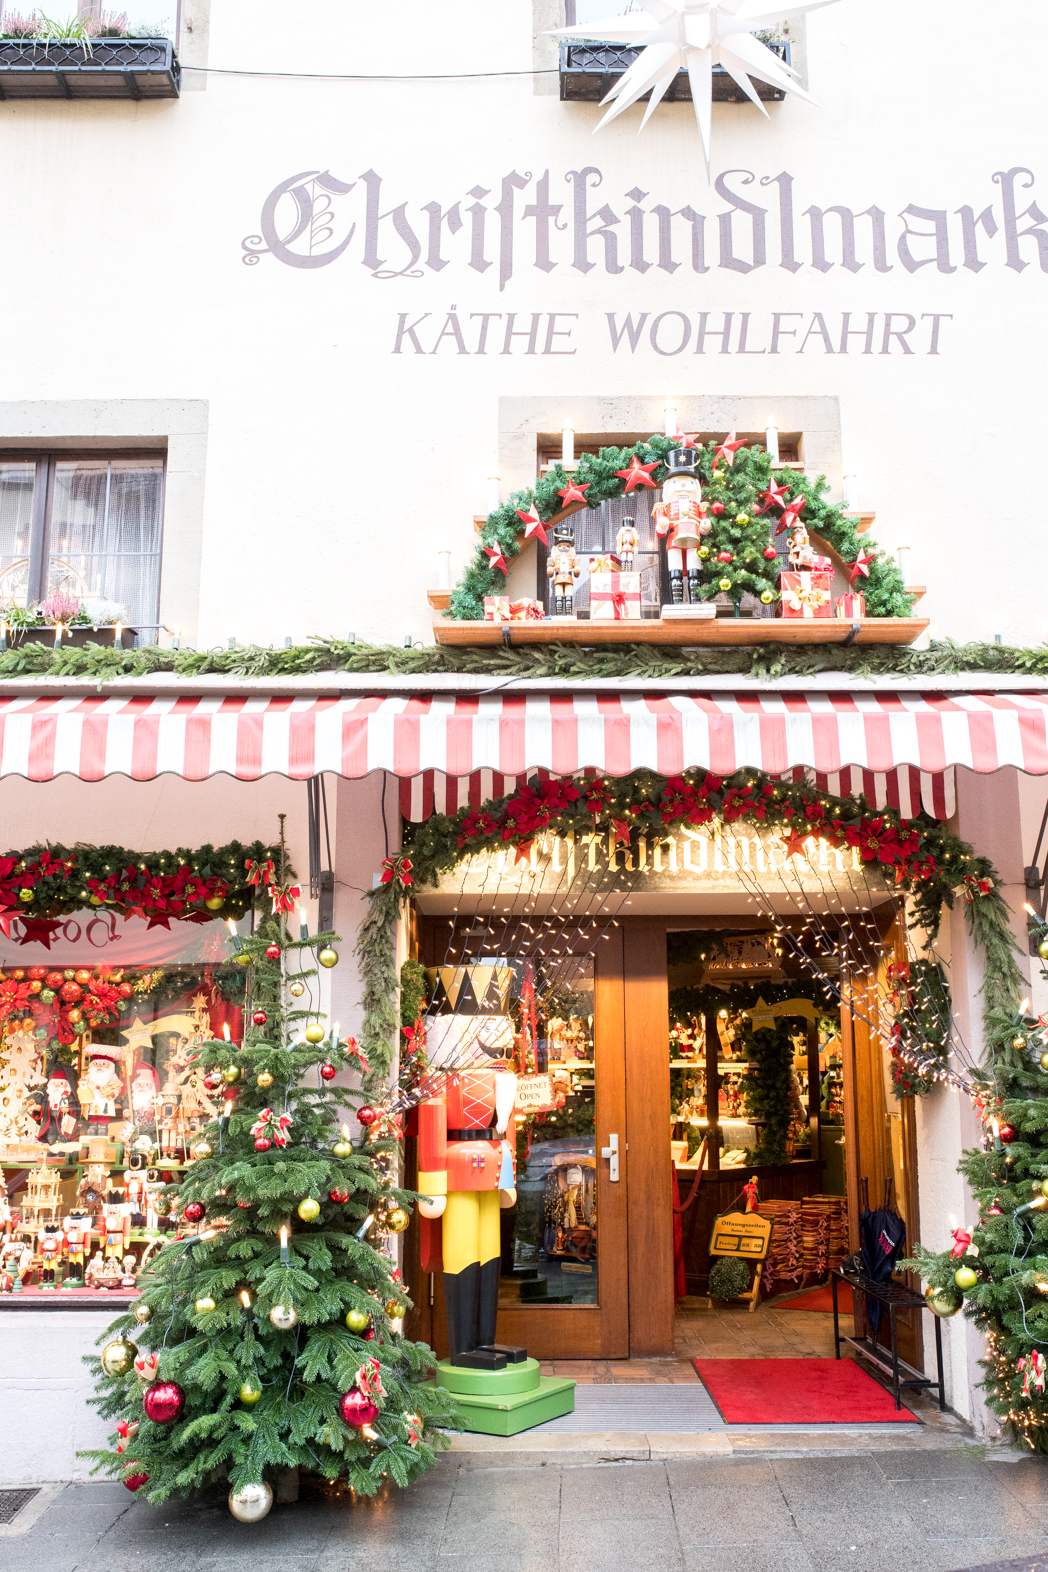 Stacie Flinner Christmas Rothenburg ob der Tauber Germany-17.jpg